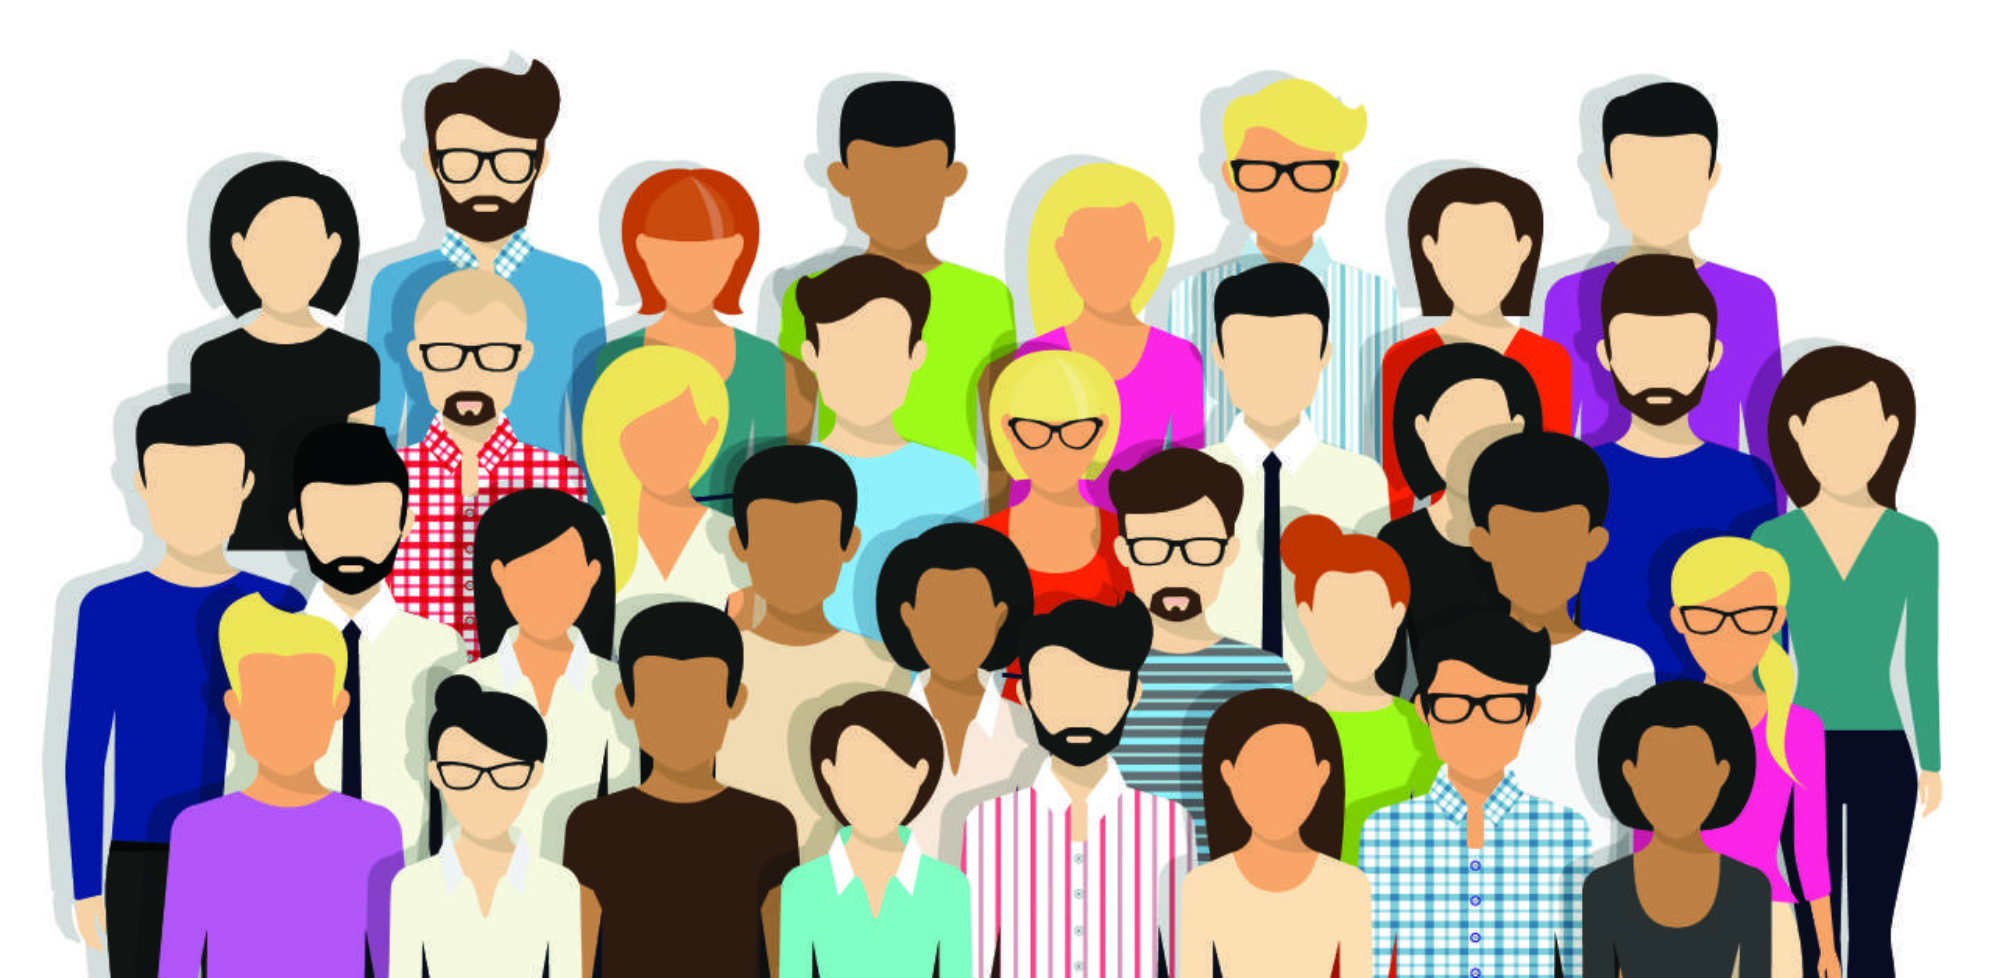 Diversity People Png & Free Diversity People.png Transparent Images.